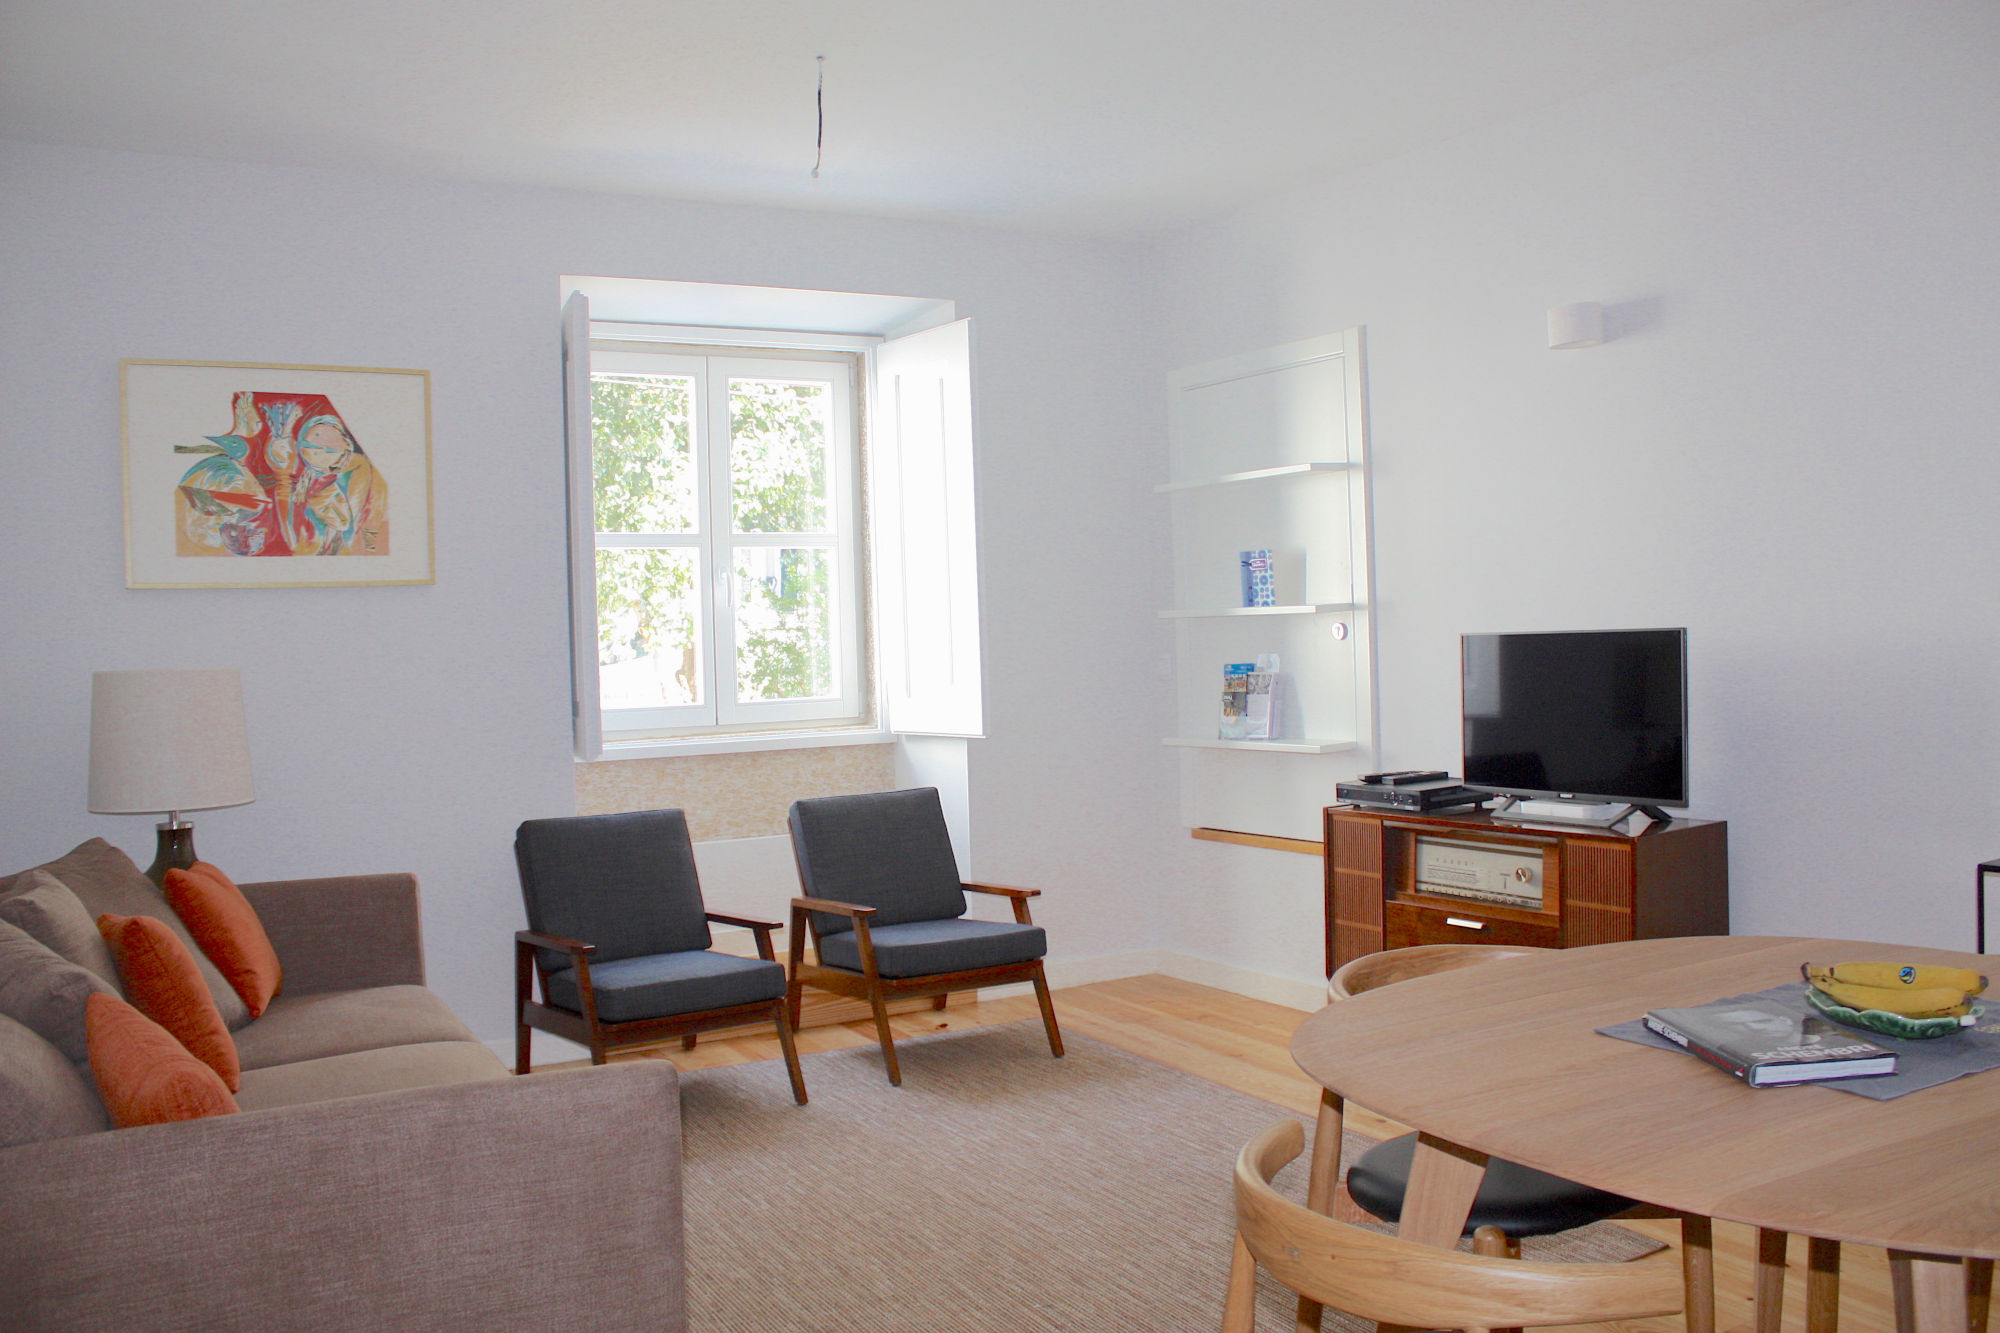 One bedroom apartment Lisbon 3 - living and dining area